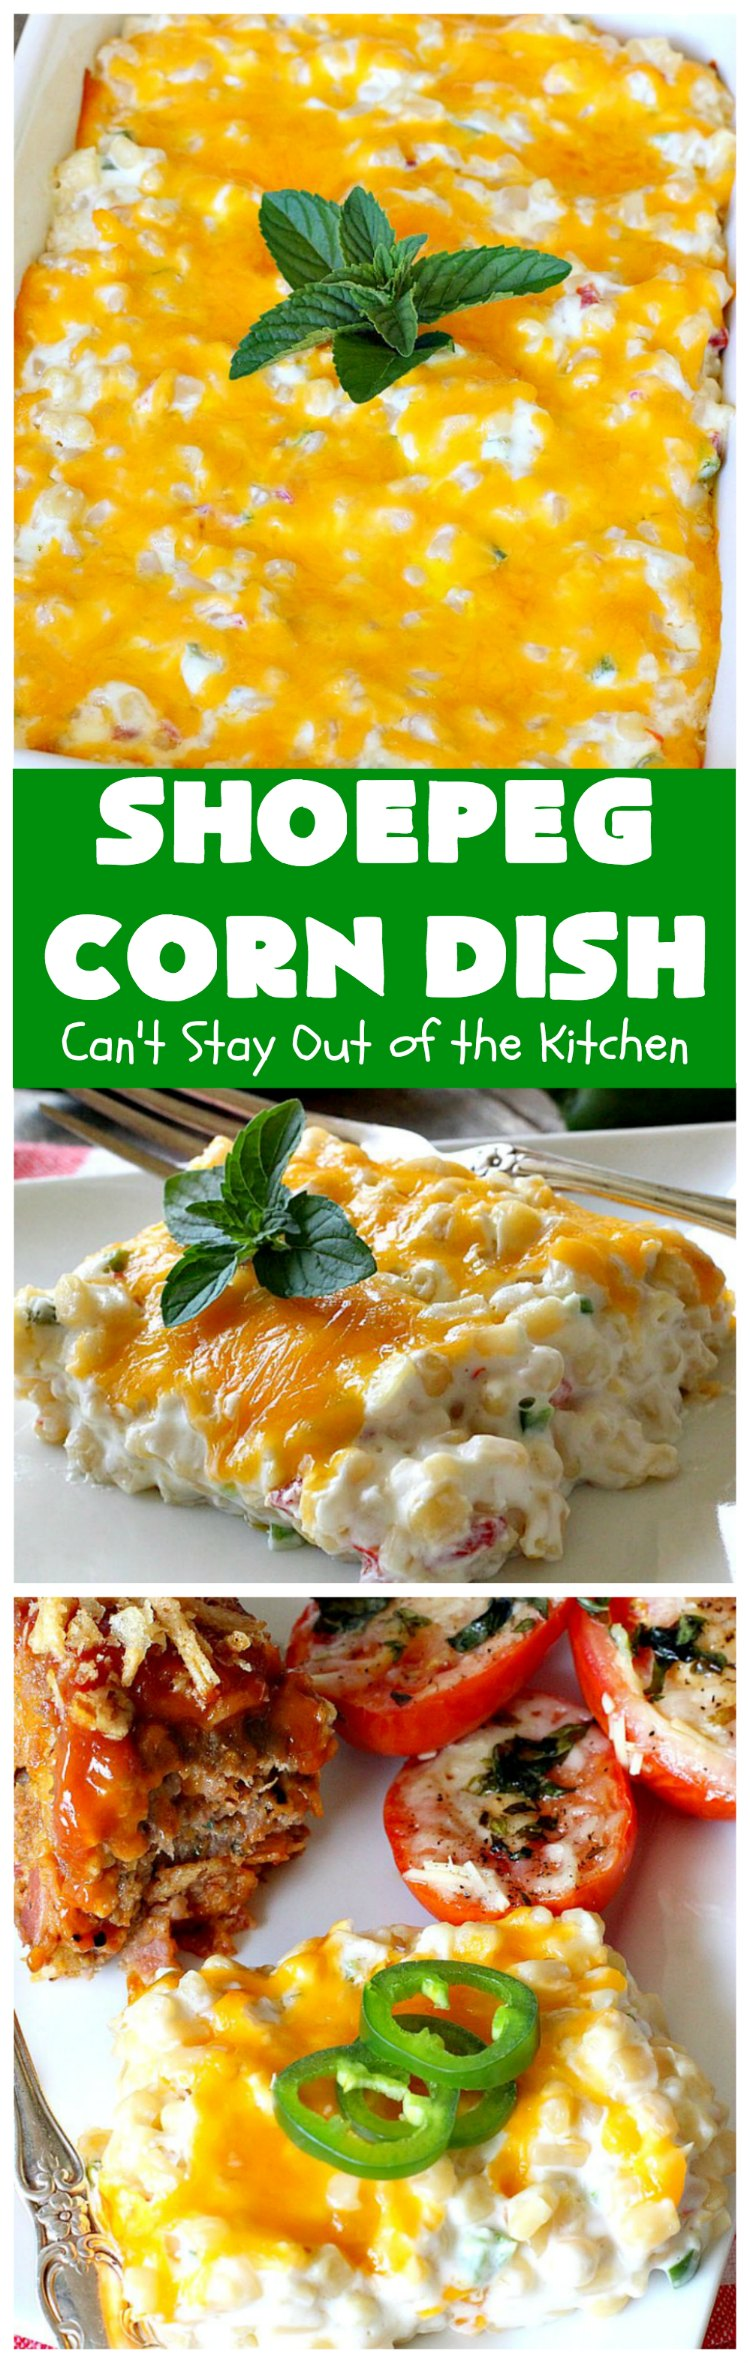 Shoepeg Corn Dish | Can't Stay Out of the Kitchen